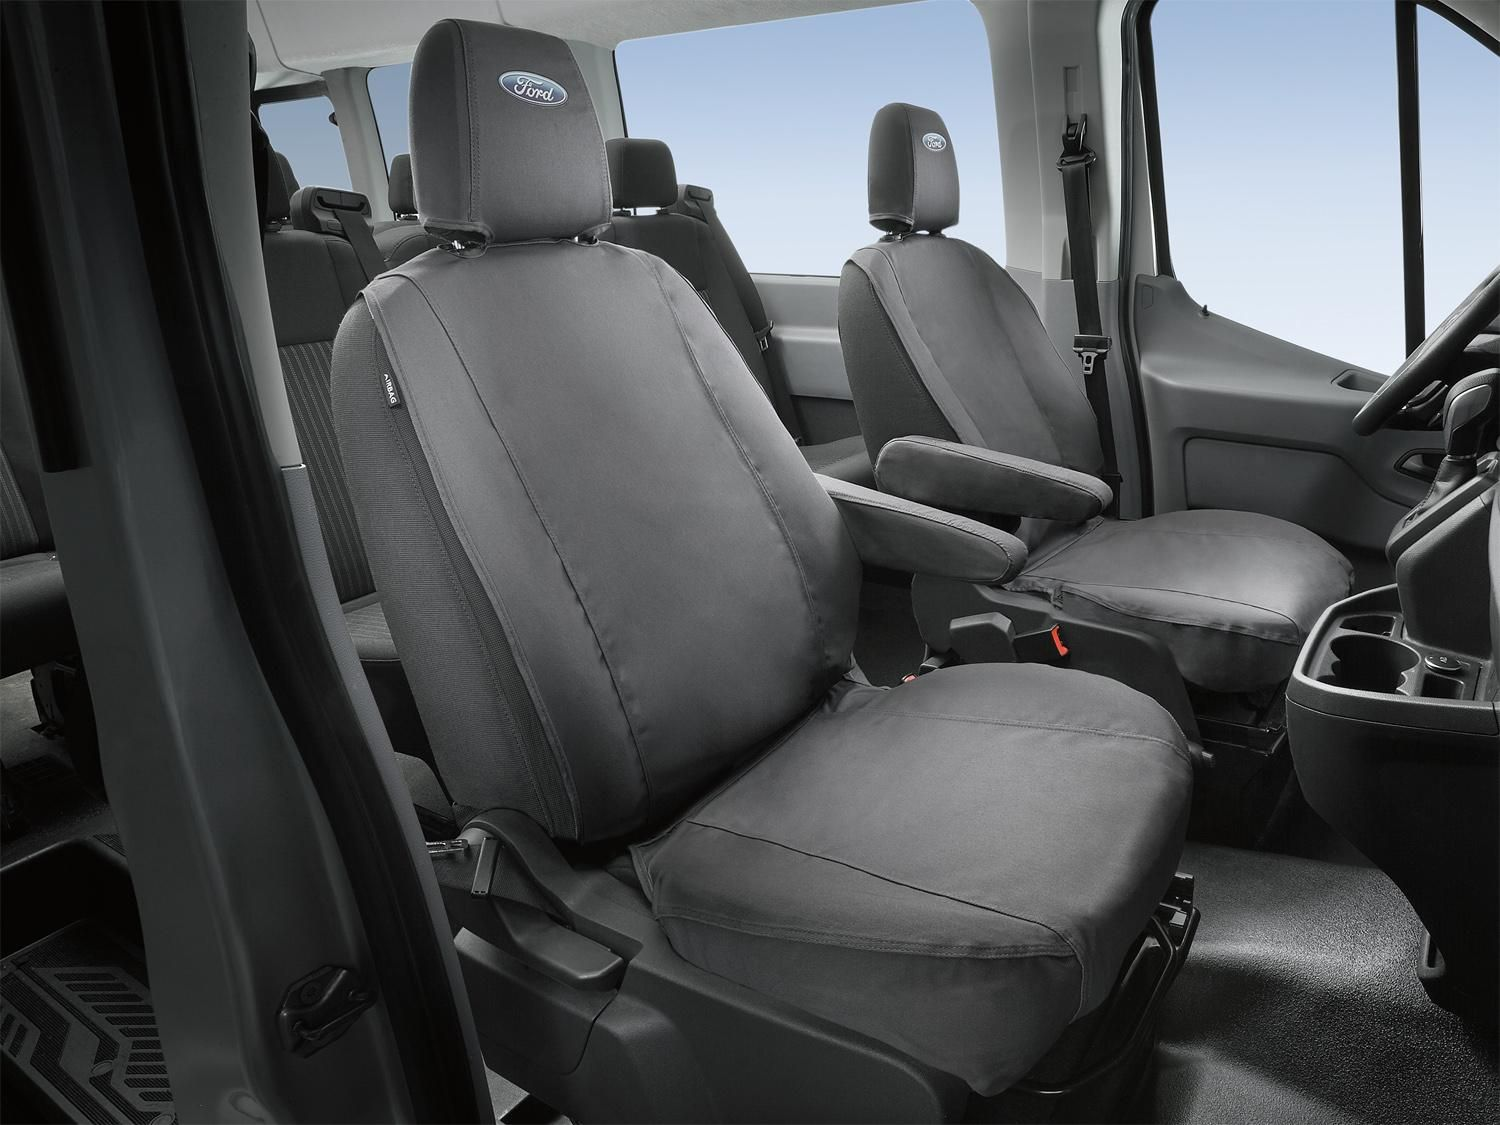 Seat Covers - Rear Crew, 60/40 with Armrest